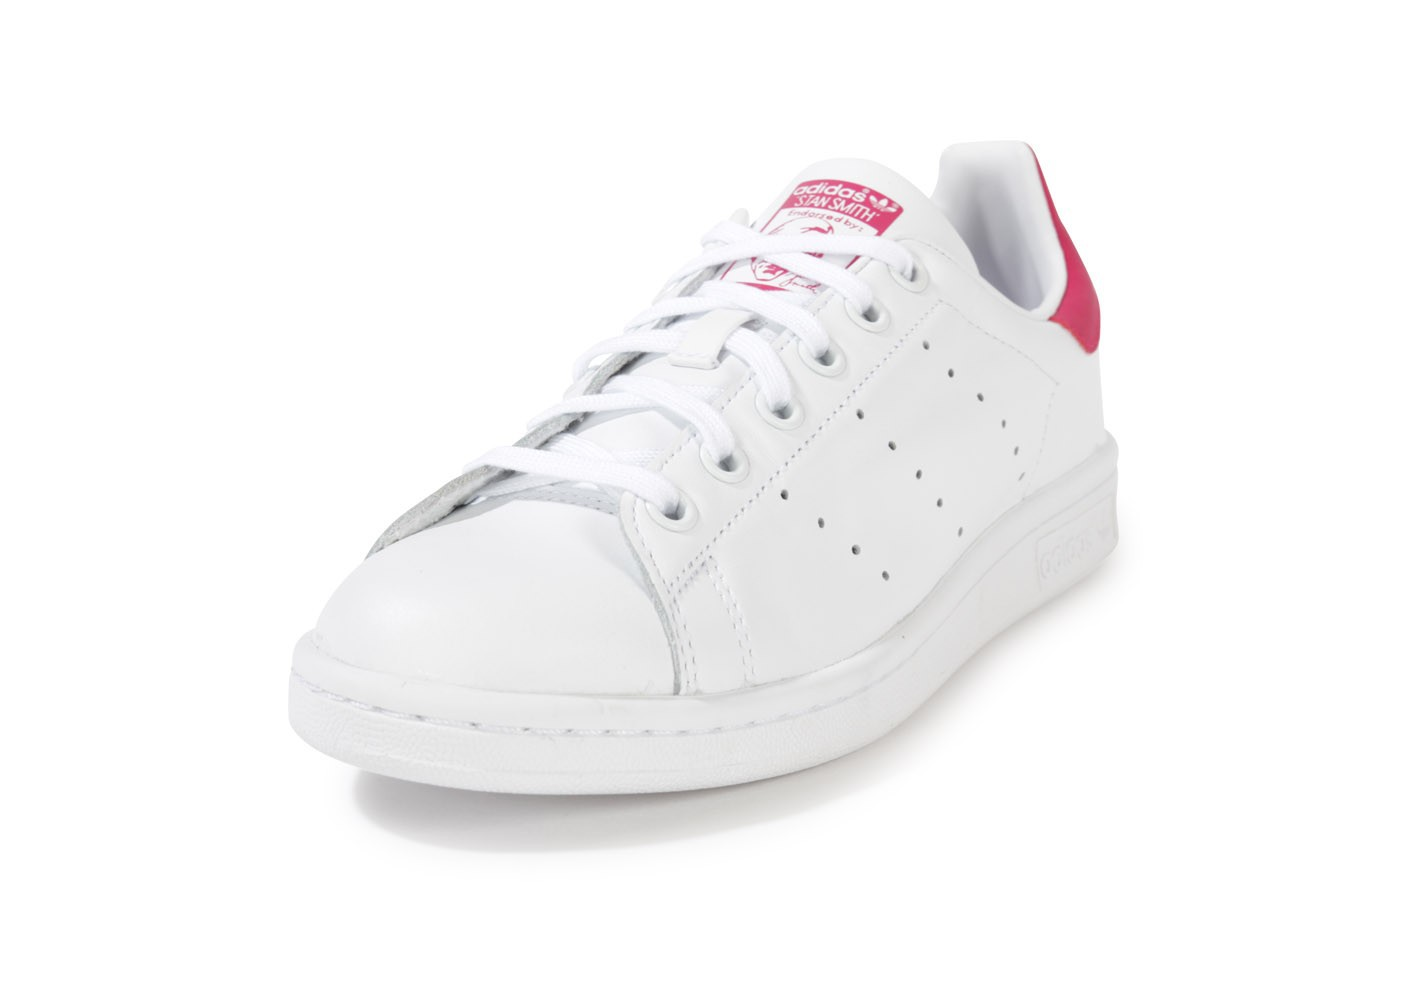 promotion adidas stan smith